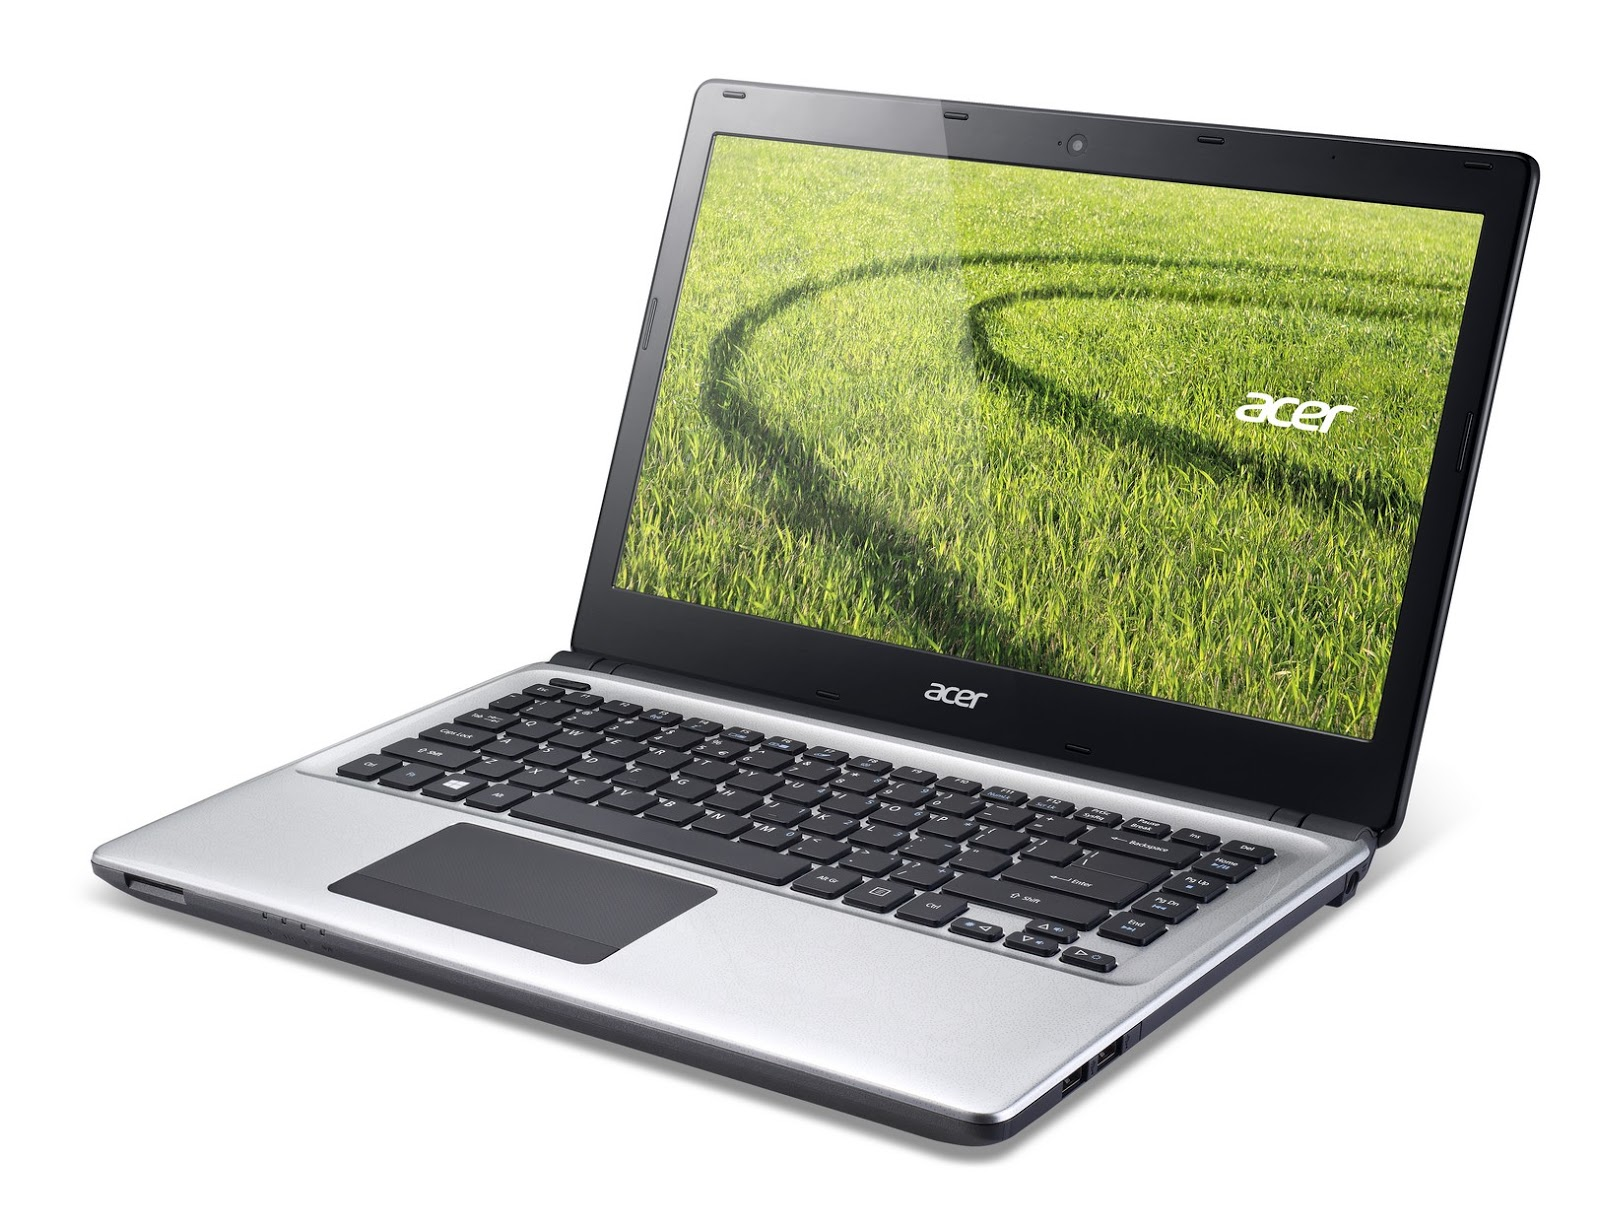 ACER ASPIRE E1-432P ALPS TOUCHPAD DRIVERS FOR WINDOWS VISTA